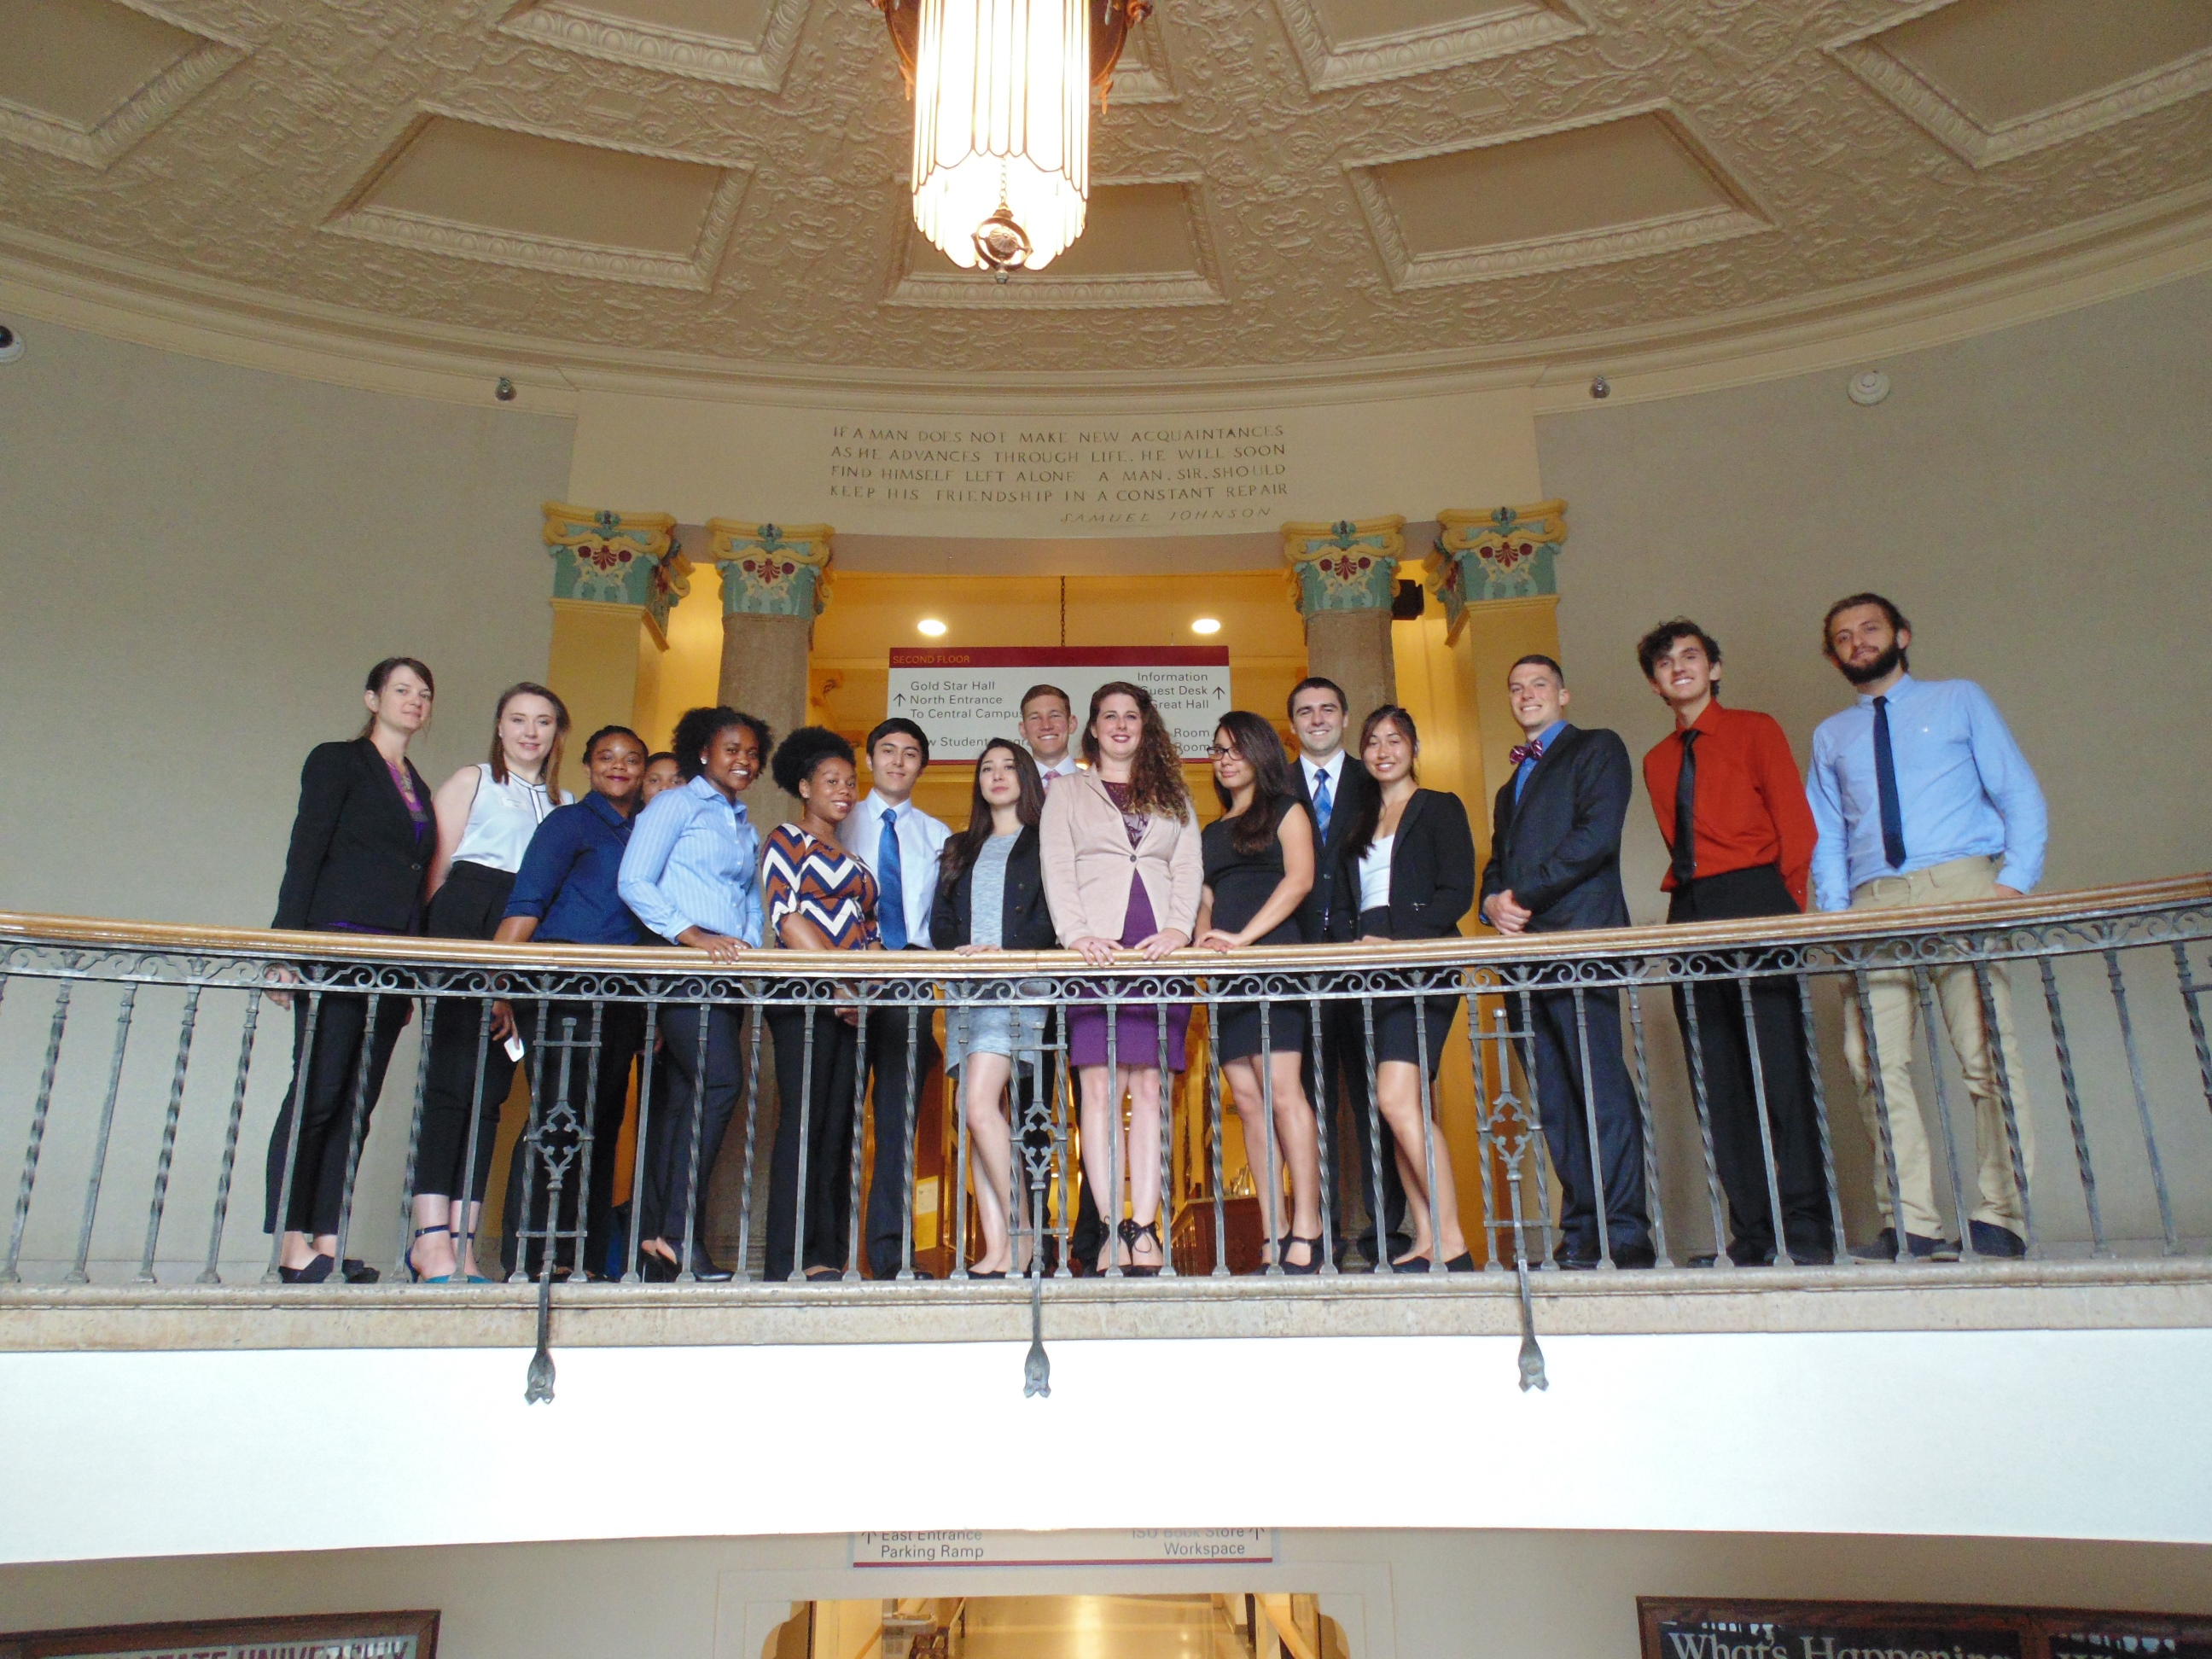 Students gather in the Iowa State University Memorial Union before the culminating poster session.